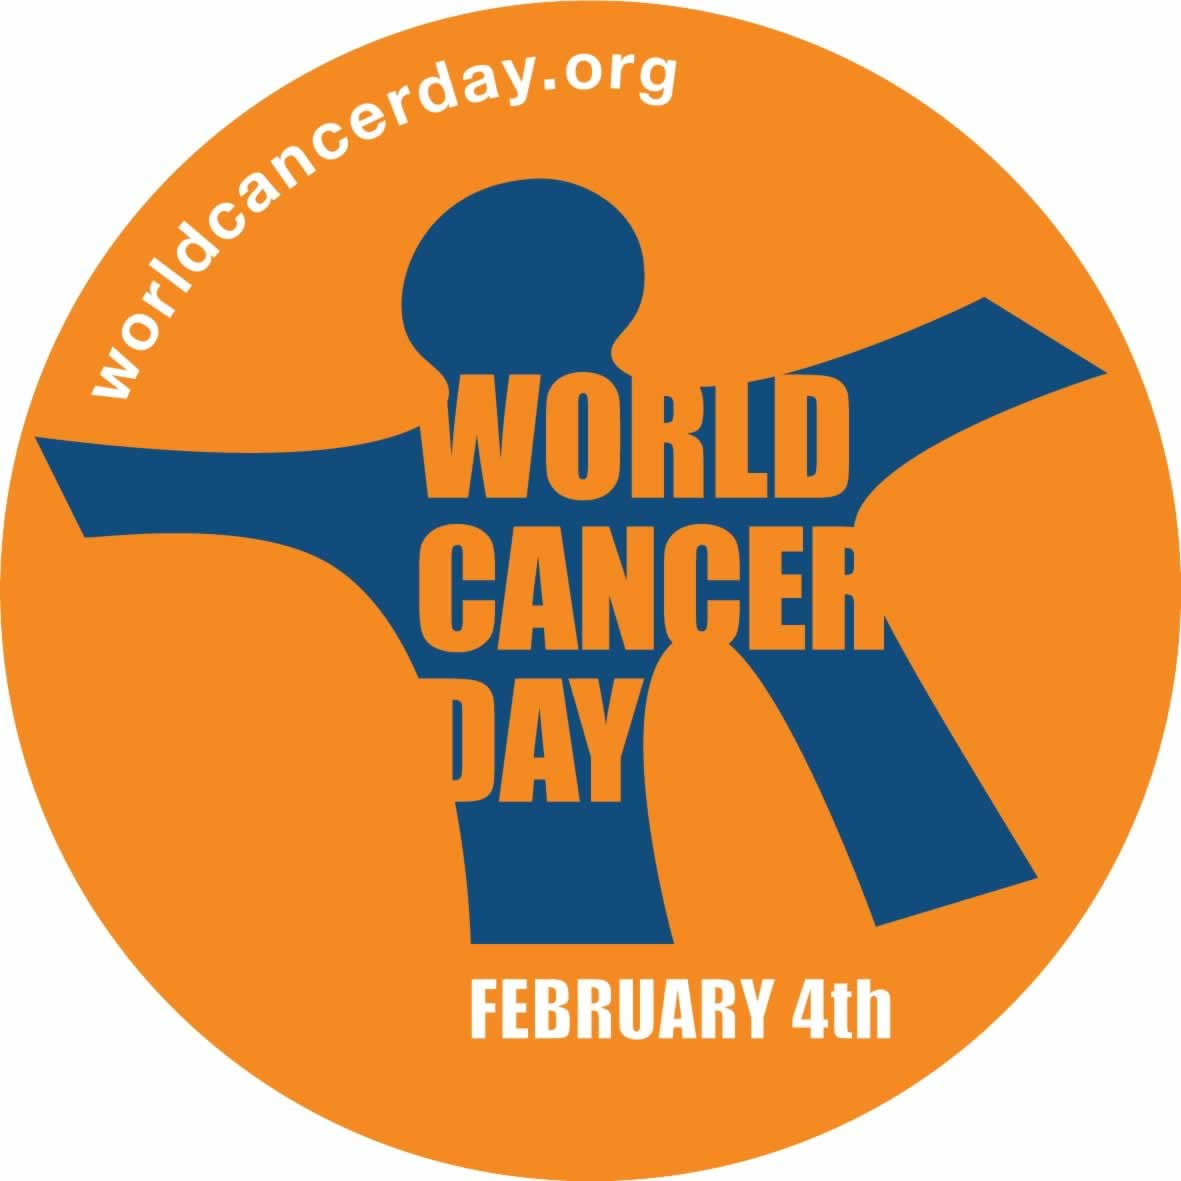 World Cancer Day February 4 - worldcancerday.org